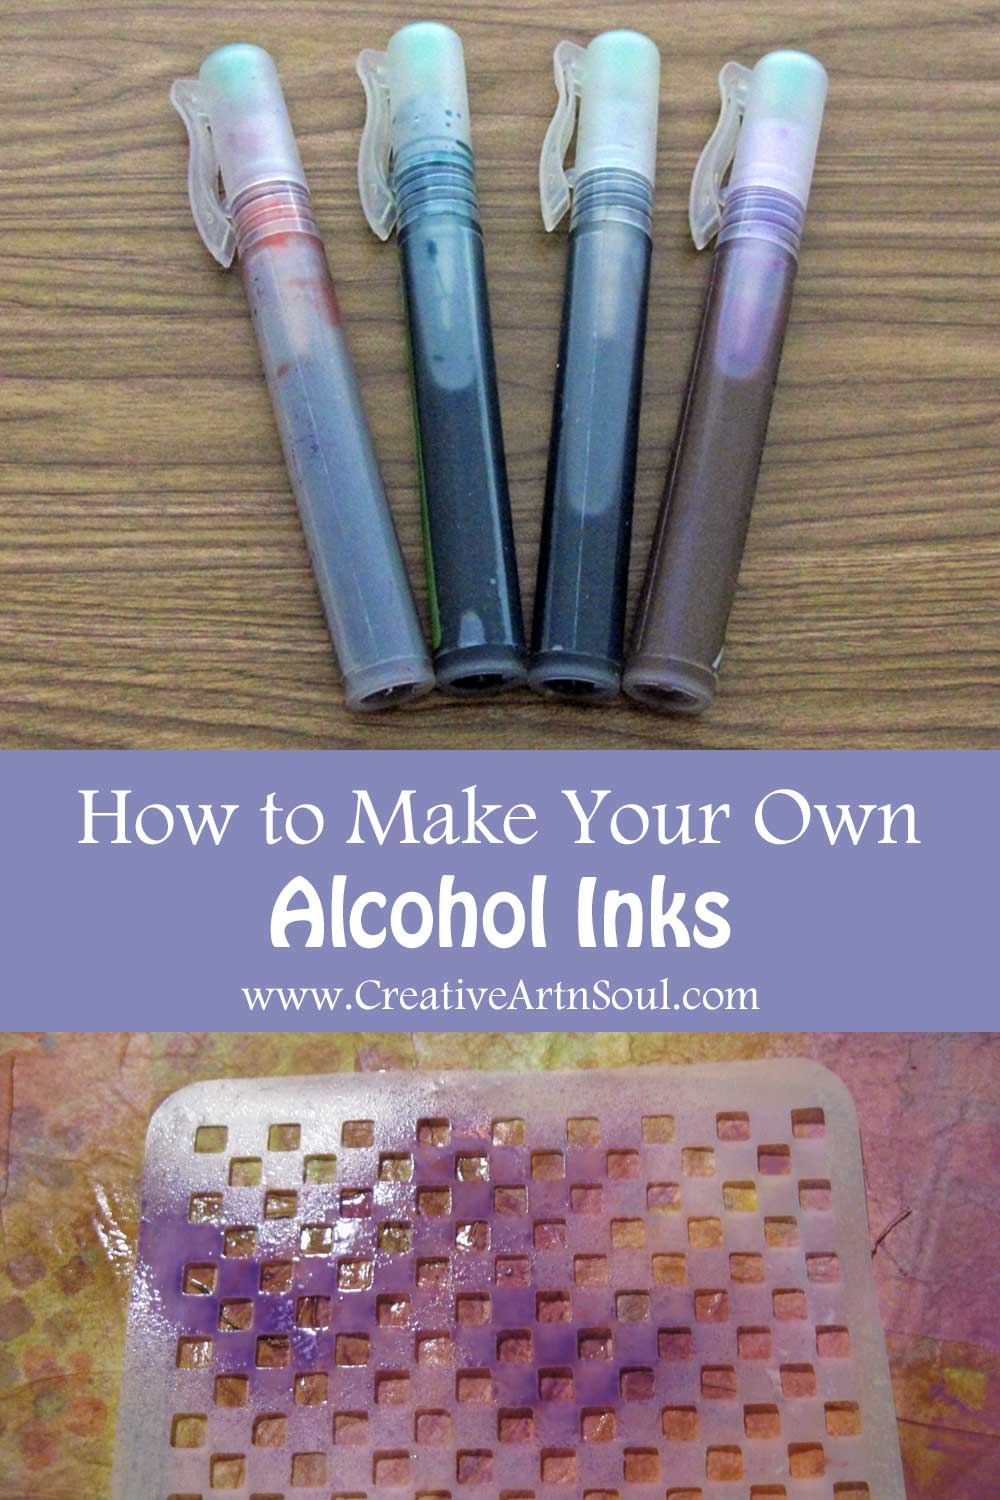 How to Make Your Own Alcohol Inks